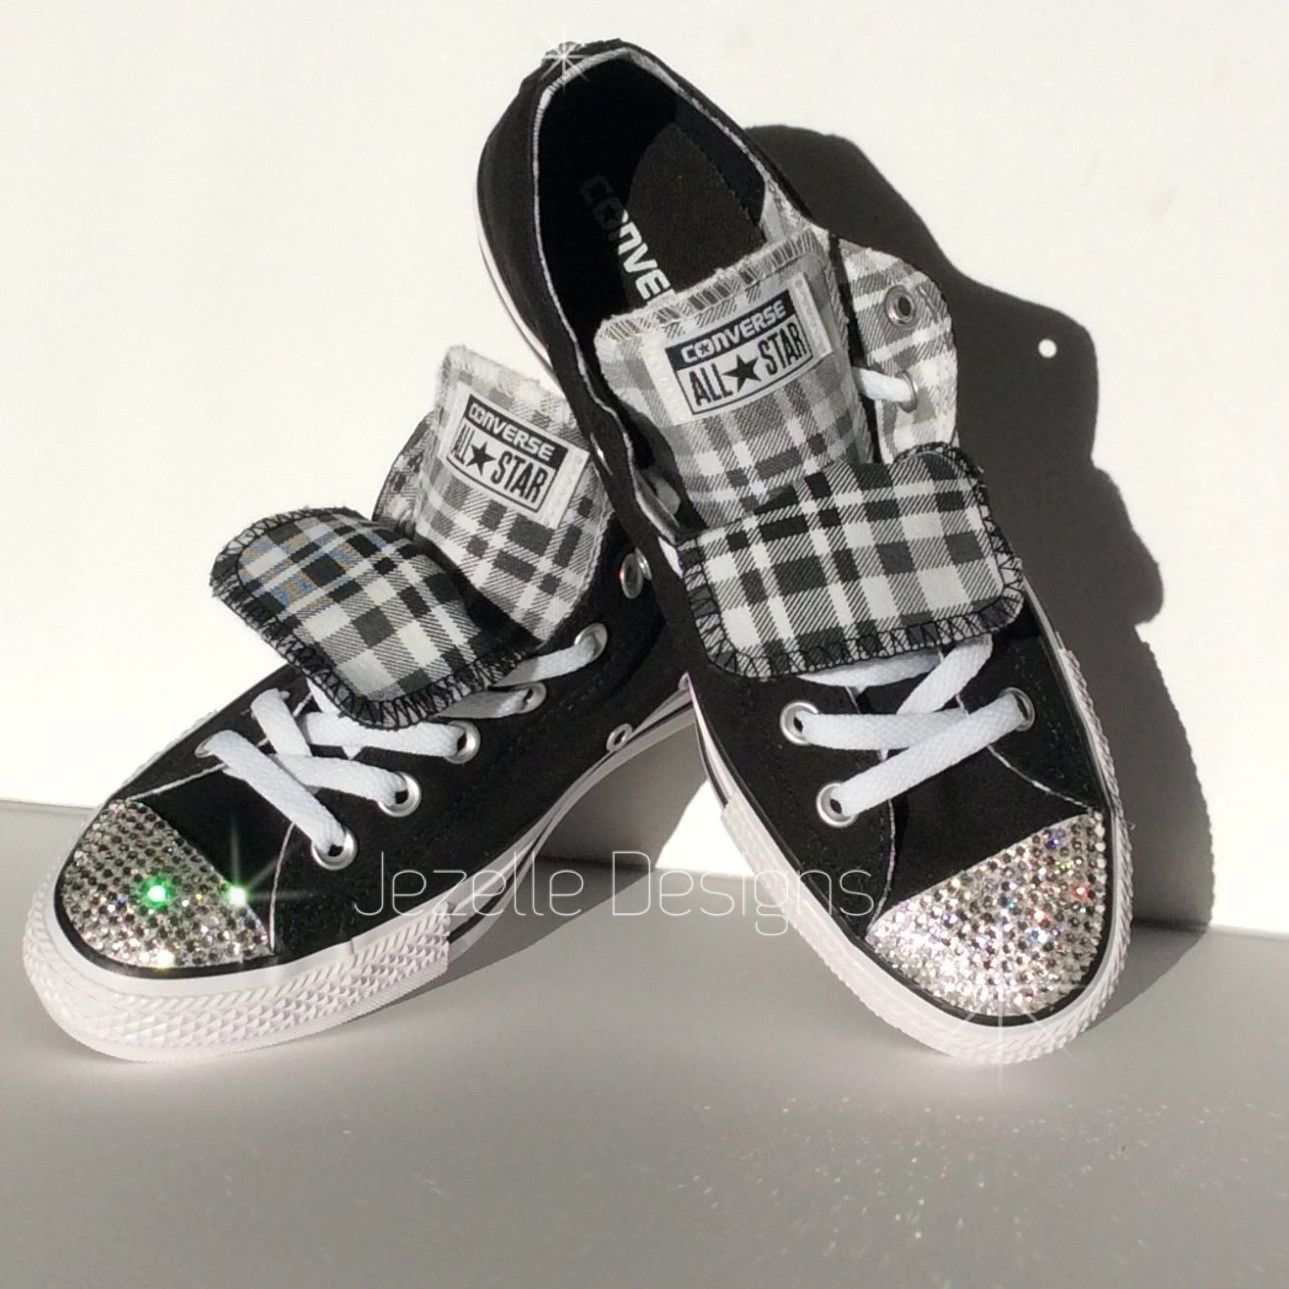 Bling Converse Sneakers | Checkerboard | Double Tongue with